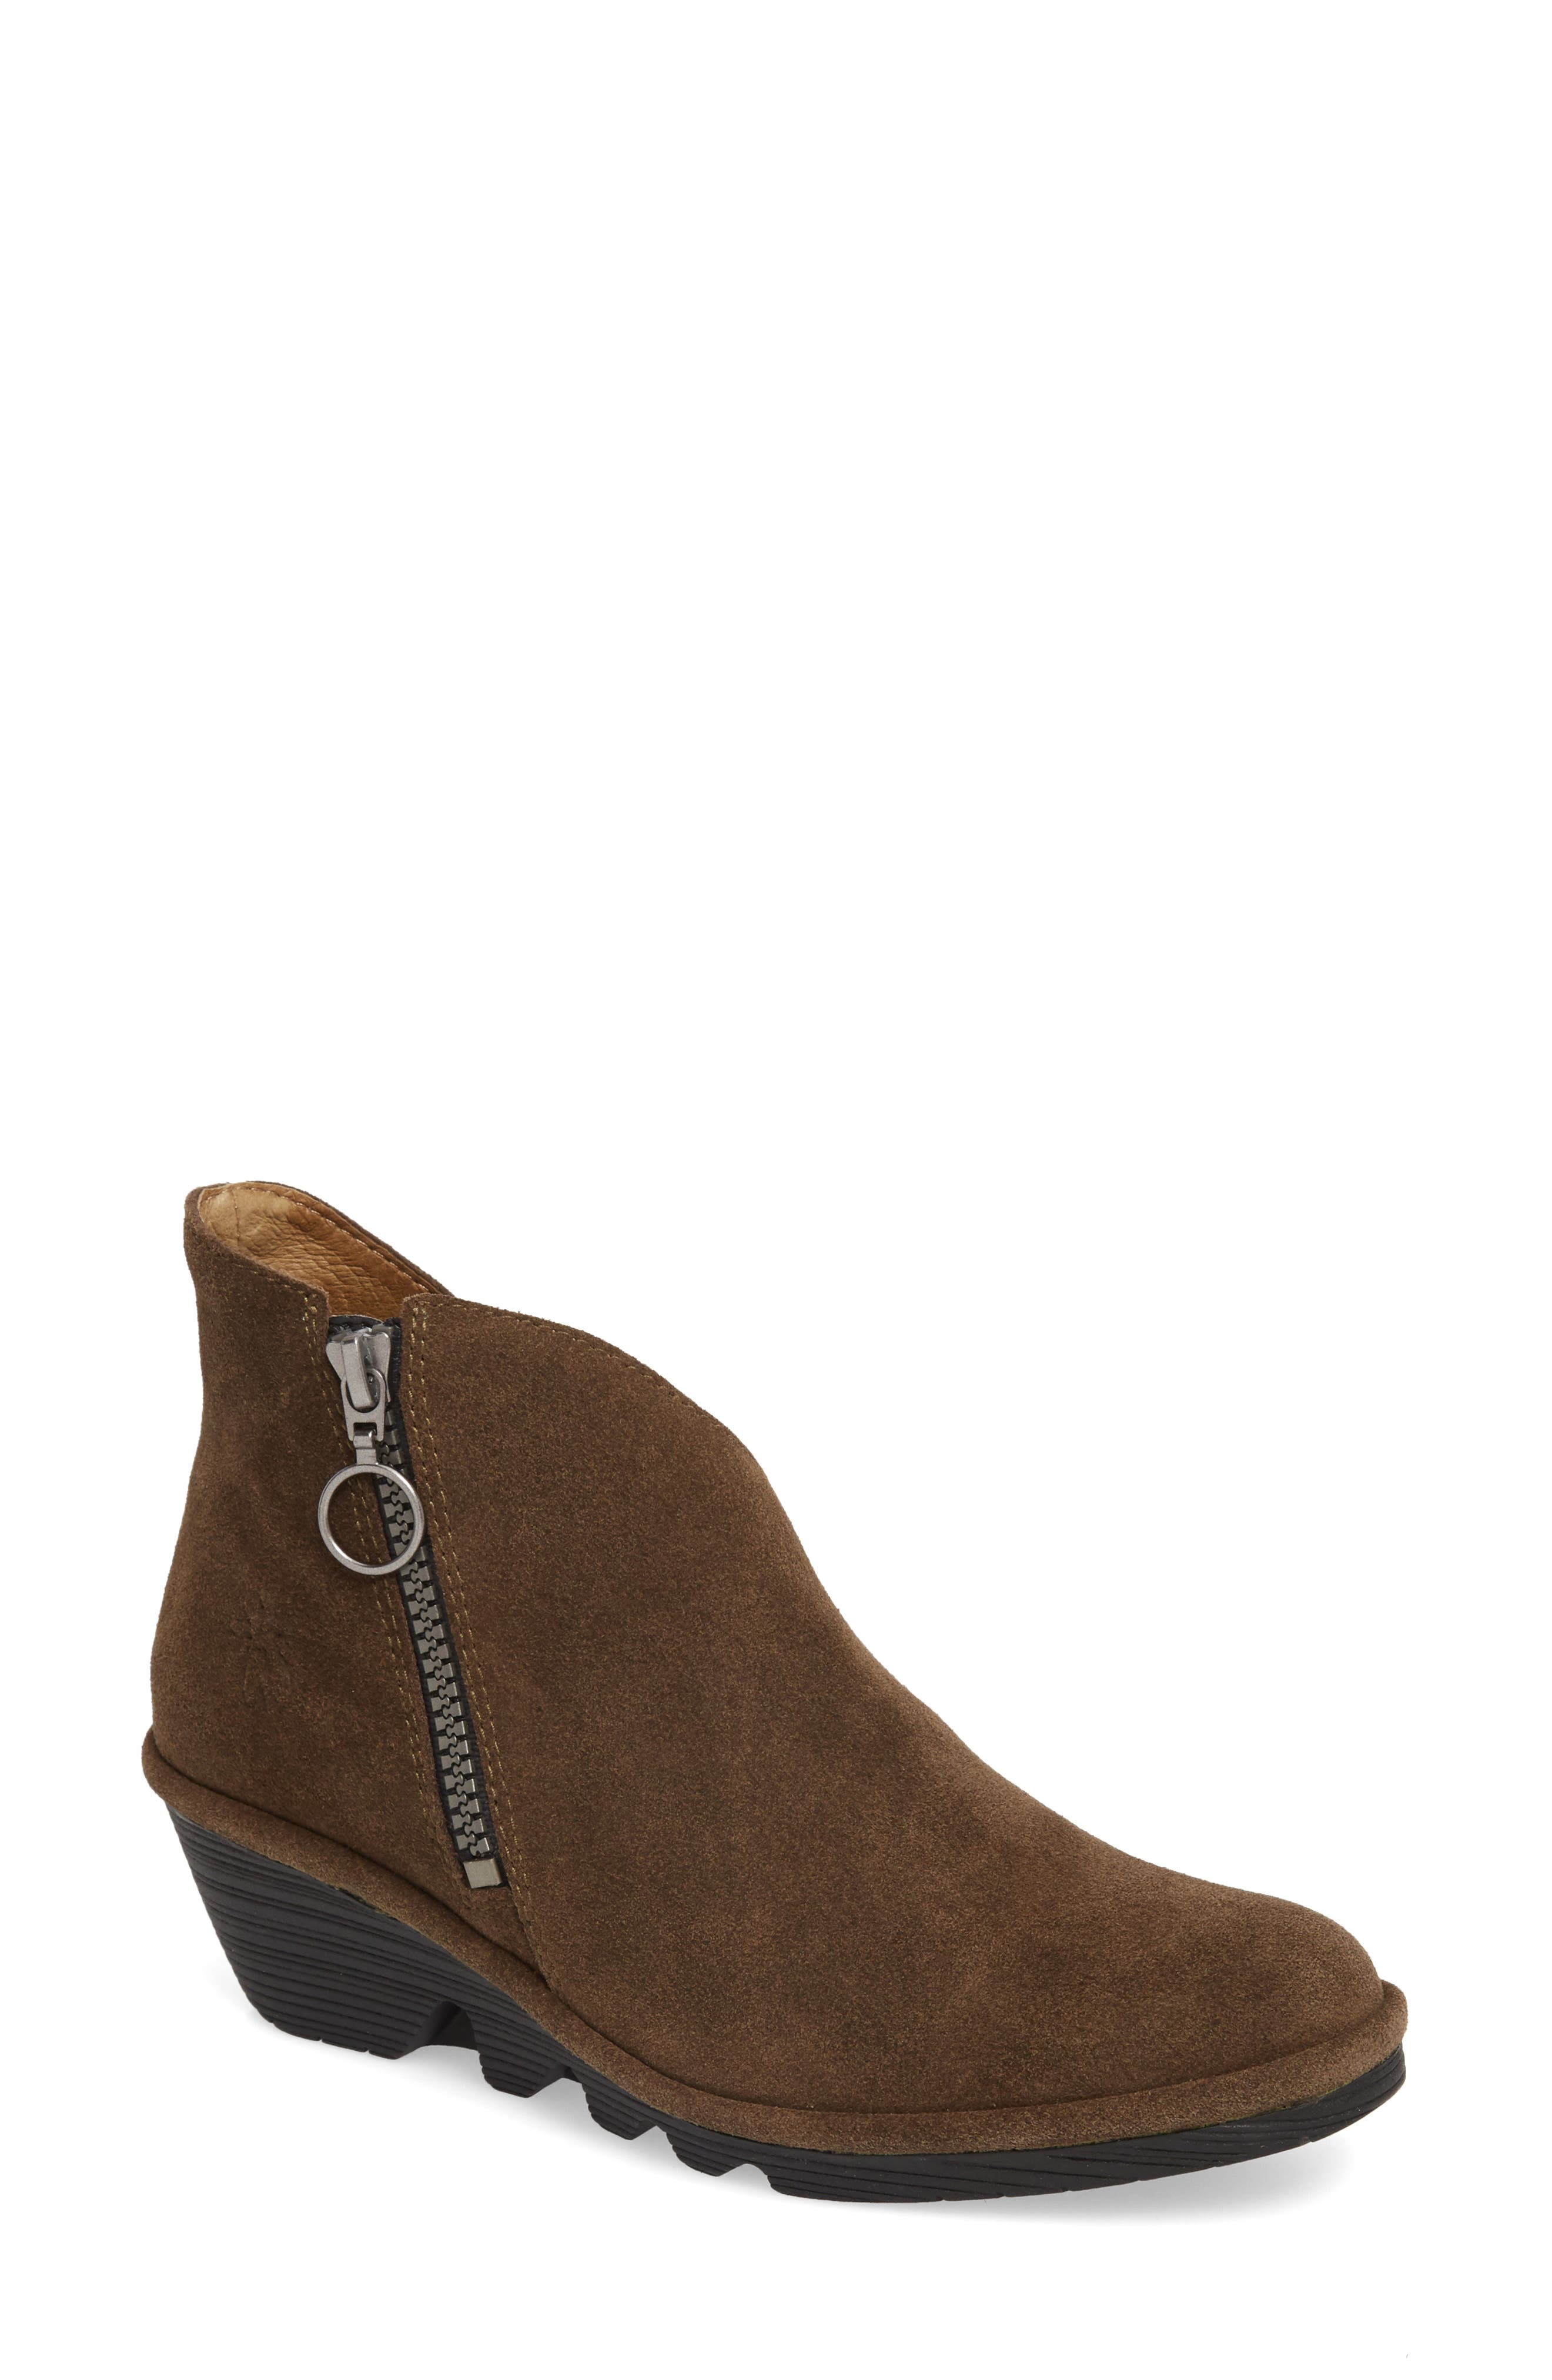 Fly London Poro Wedge Bootie - Green